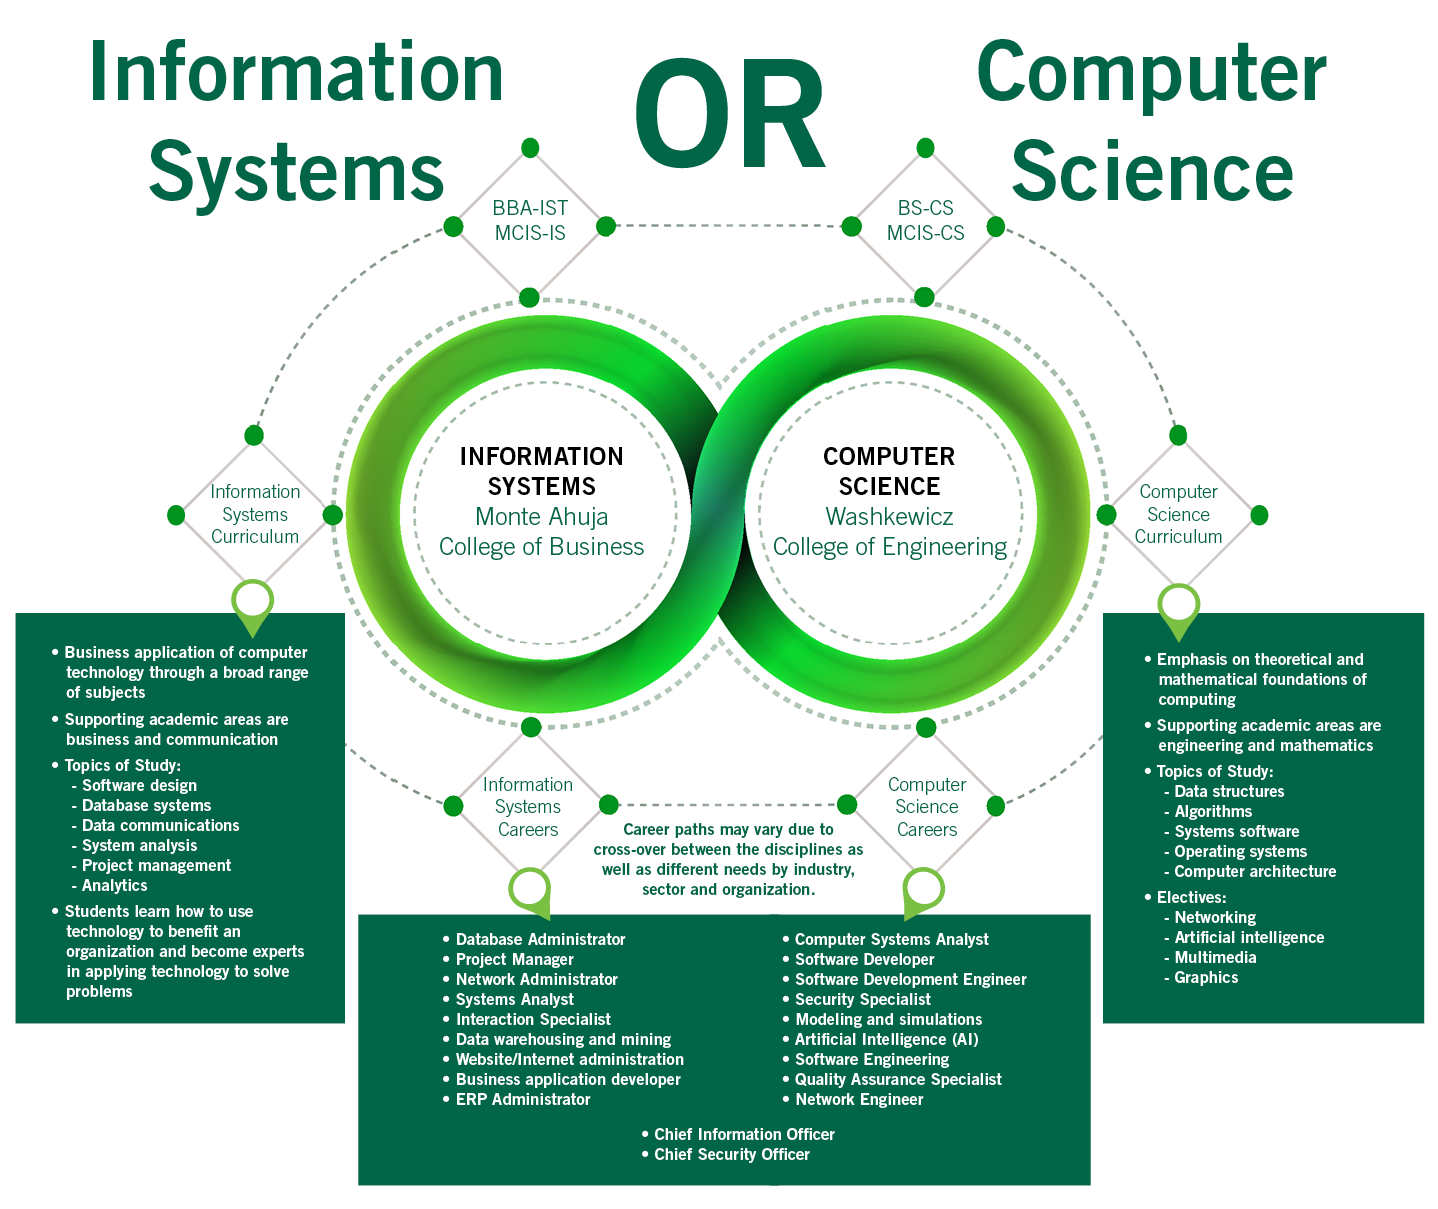 Computer Science Information Systems And Technology Cleveland State University